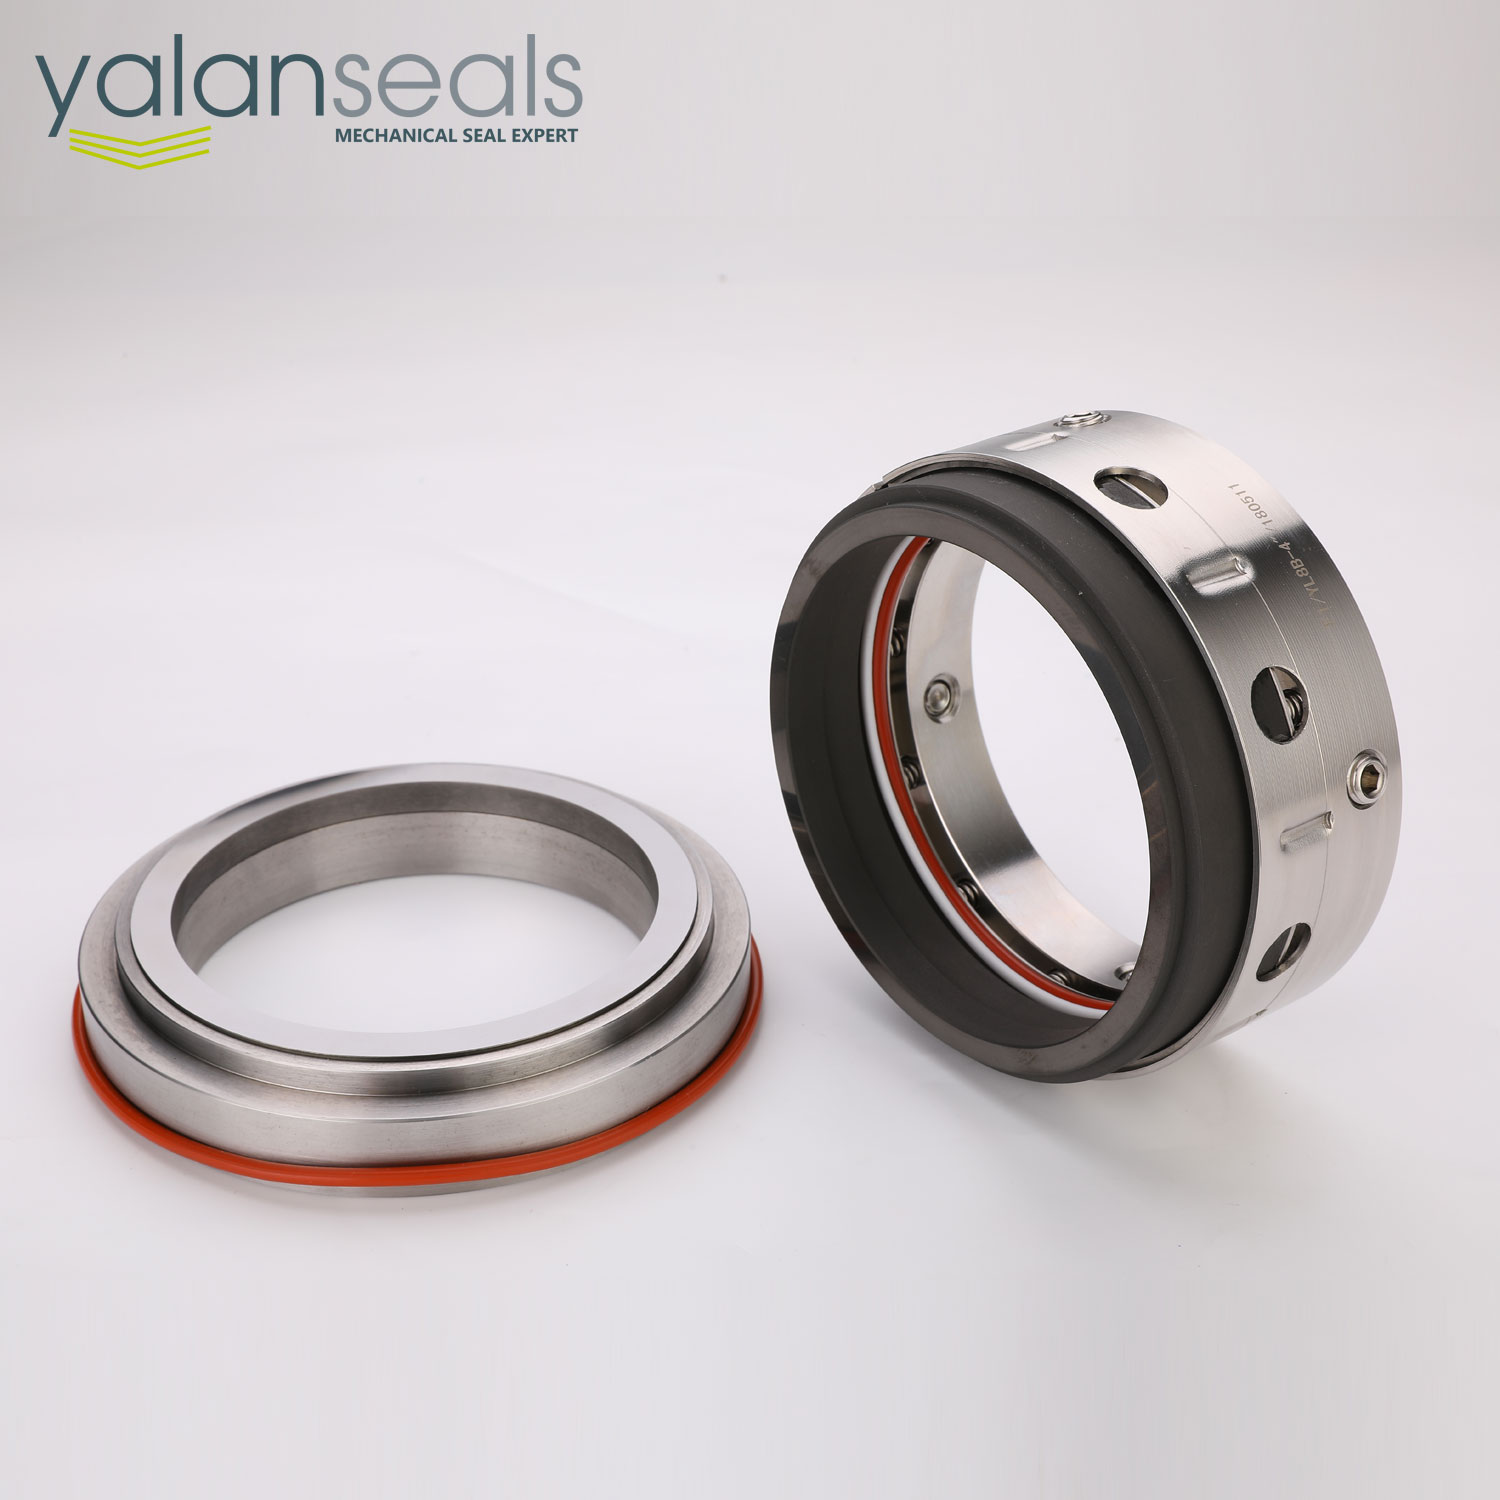 YALAN 8B1D Mechanical Seal for Boiler Feed Pumps and Power Plants